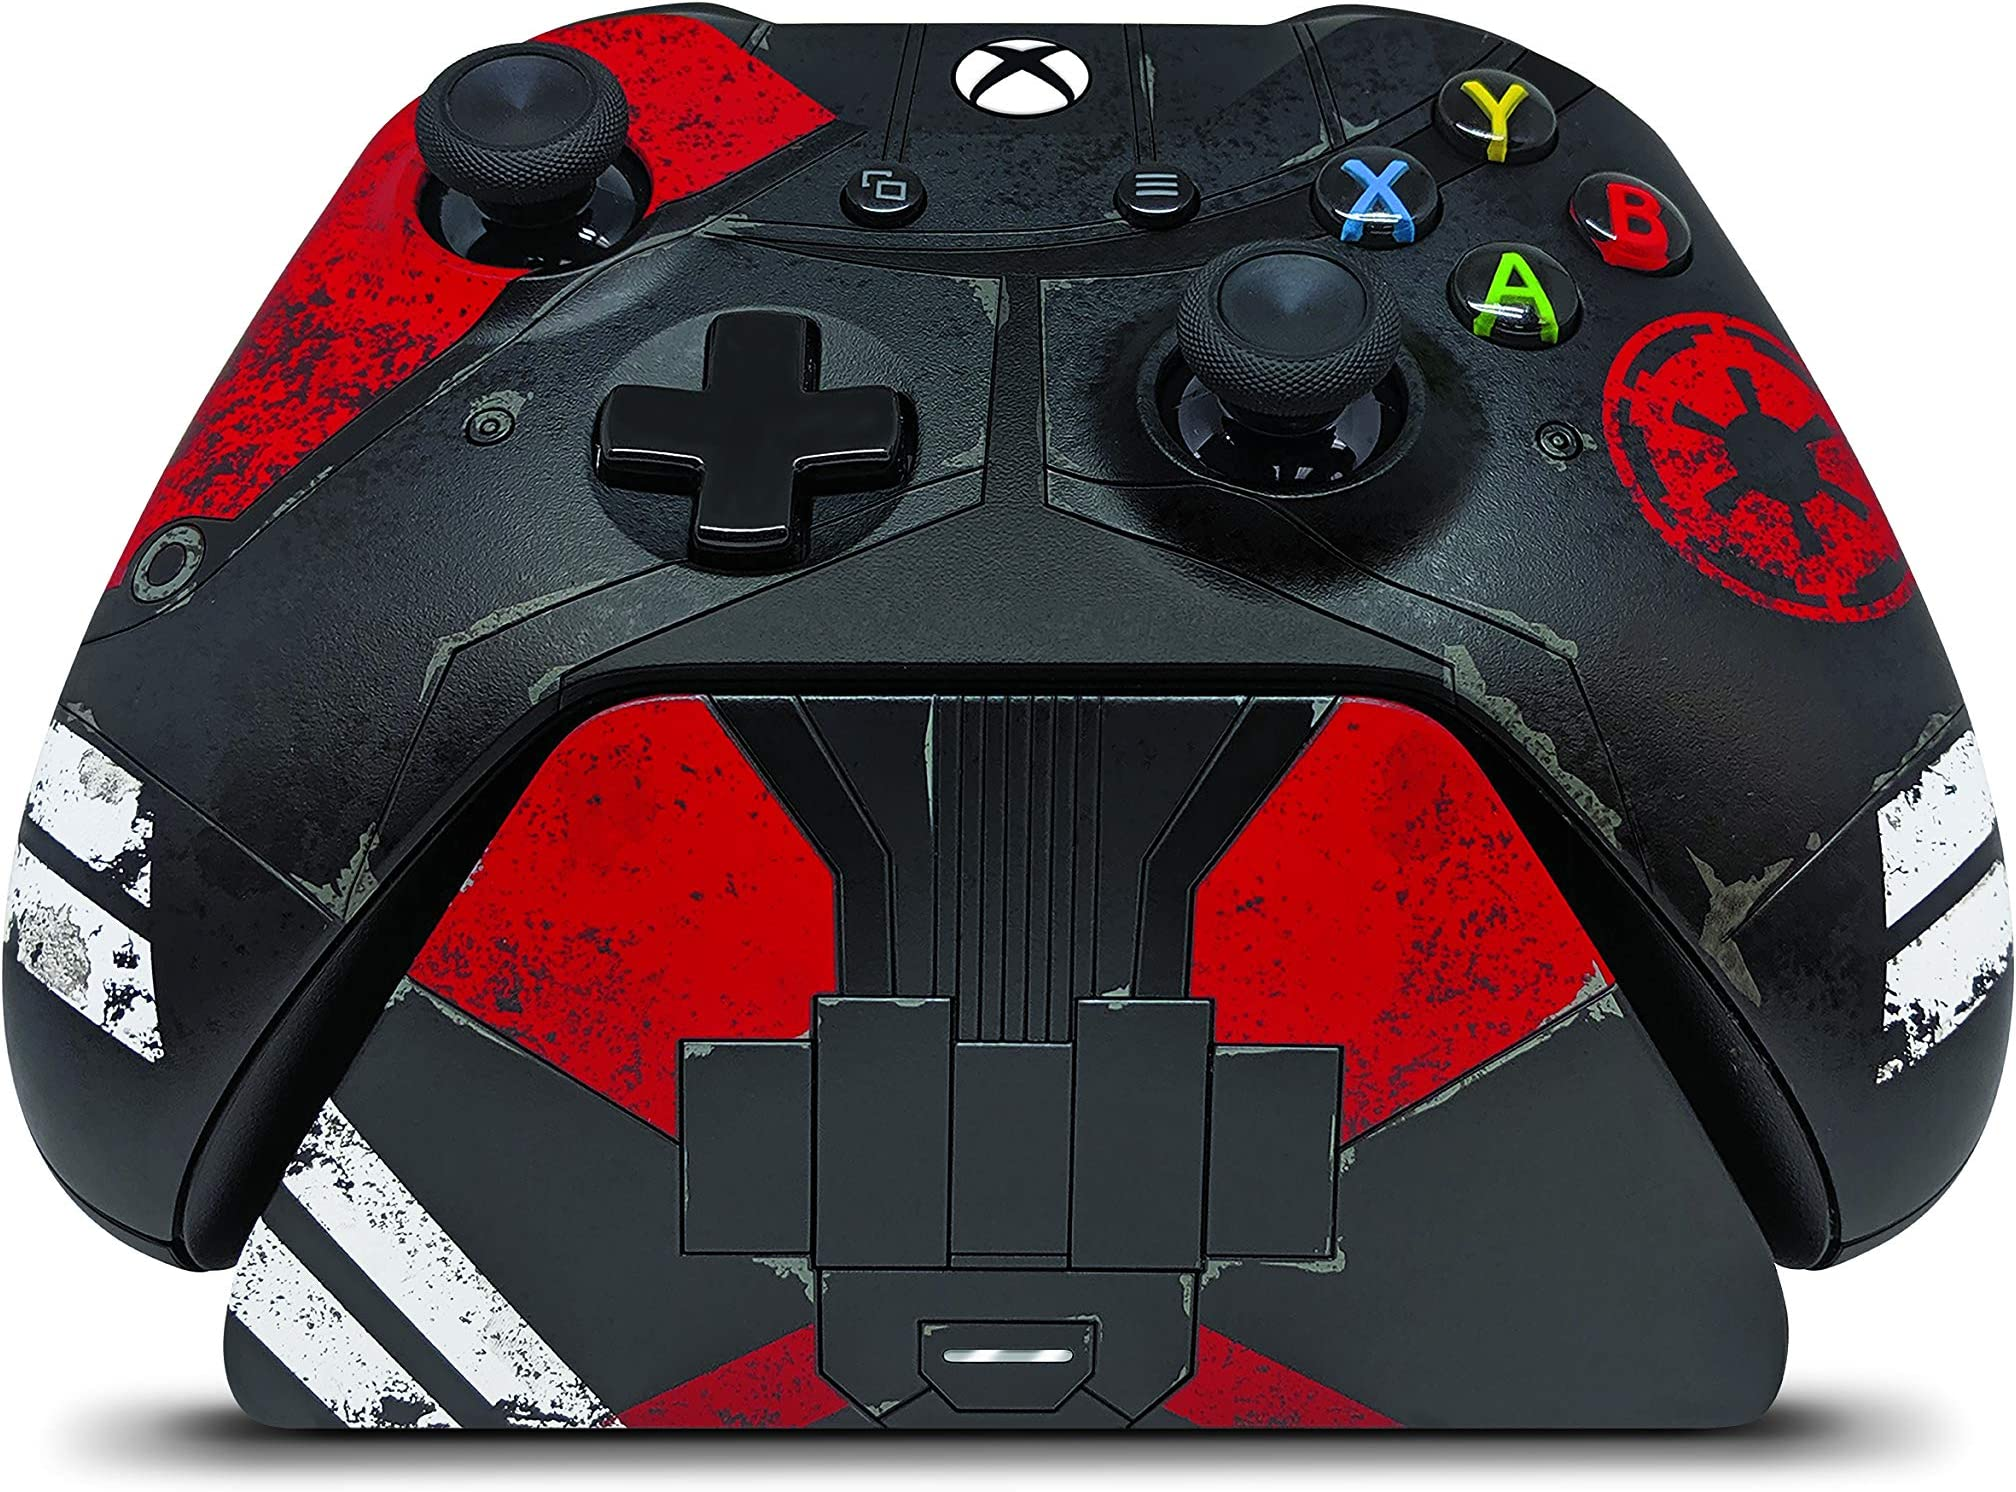 control edicion limitada star wars Xbox One